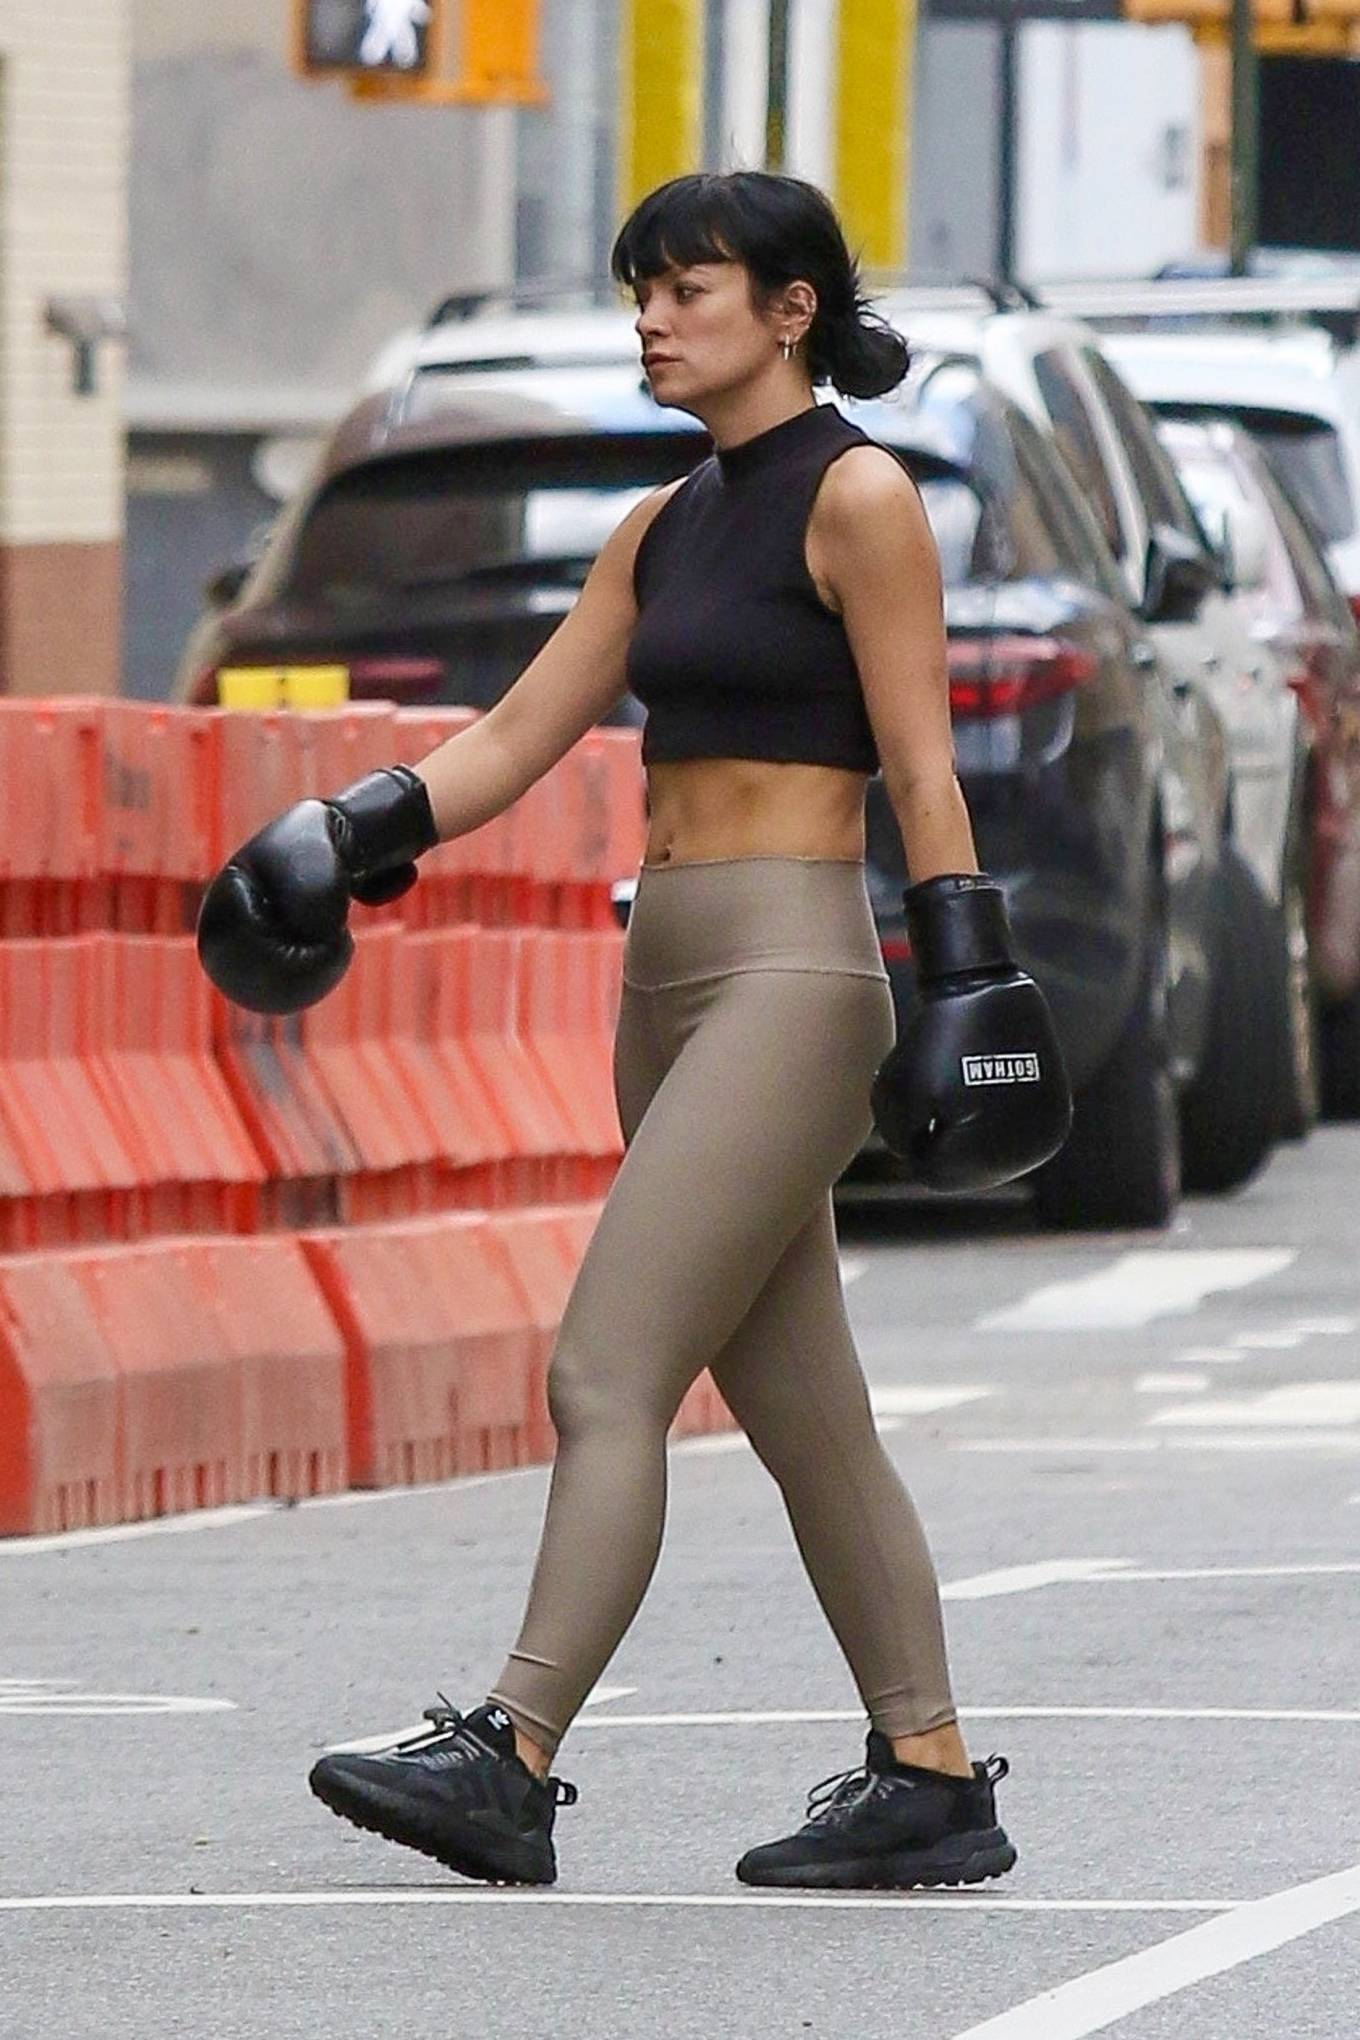 Lily Allen 2021 : Lily Allen – Wears boxing gloves while workout at a Downtown Manhattan Gym-09